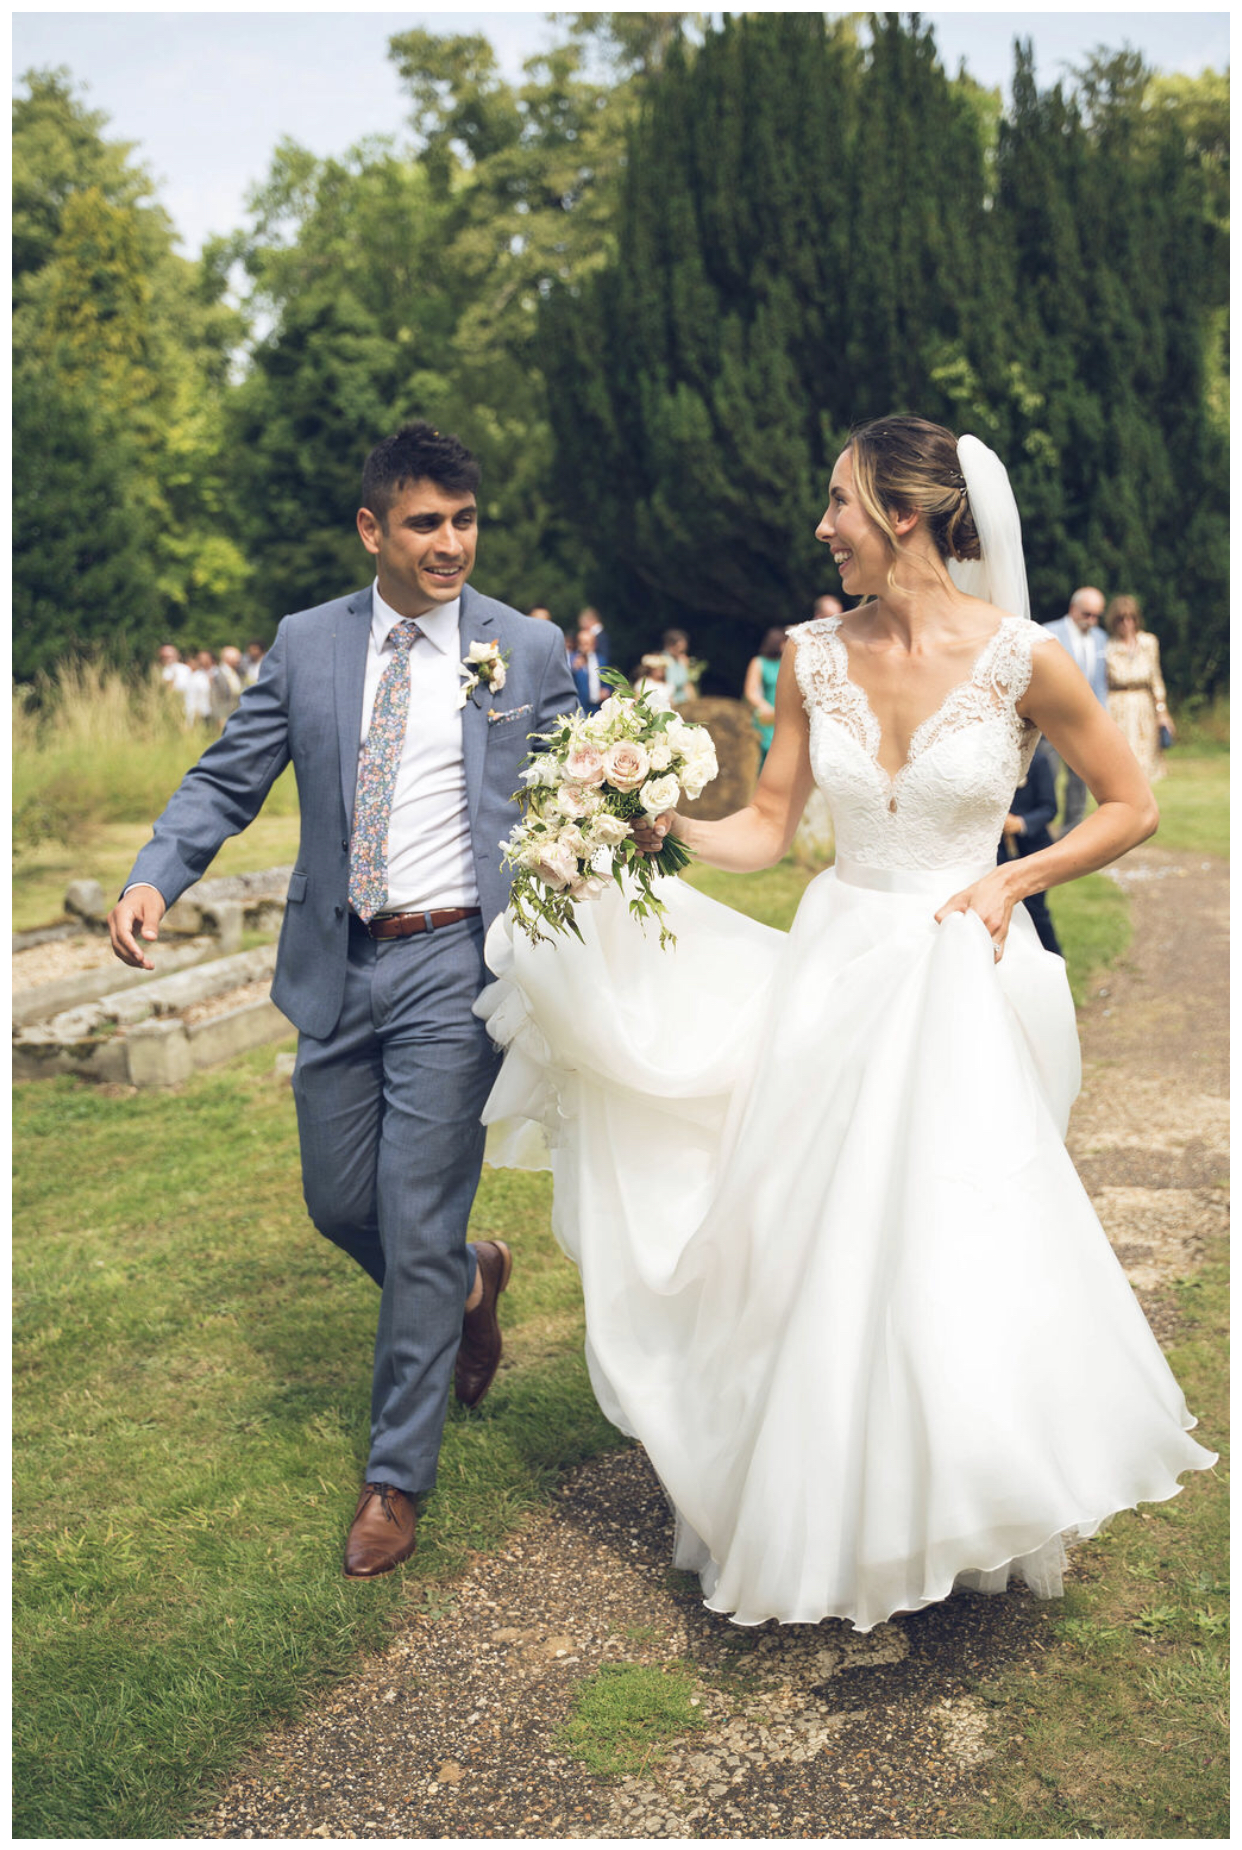 Olympian Samantha Murray looking gorgeous in Suzanne Neville.